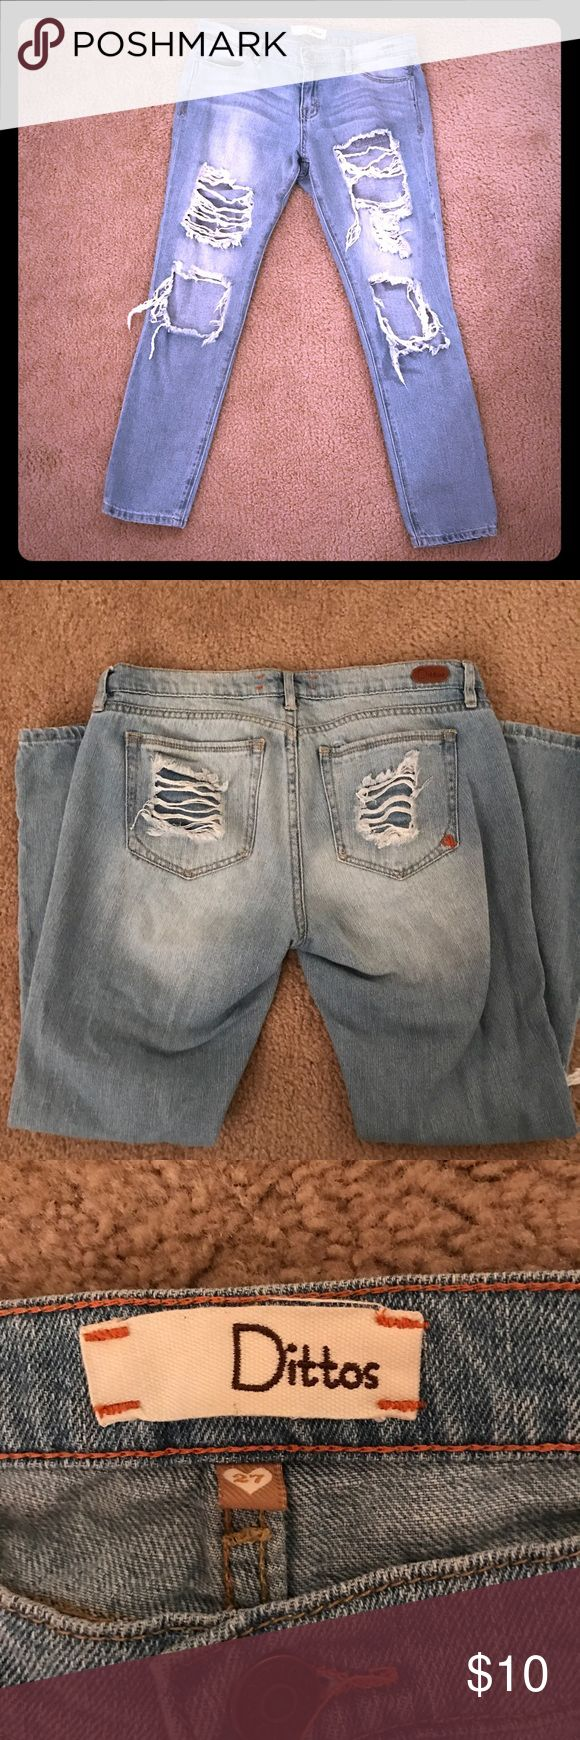 Distressed Light Wash Dittos Jeans Size 27 Distressed Dittos jeans. Size 27. Ankle cut. Light wash. Dittos Jeans Ankle & Cropped